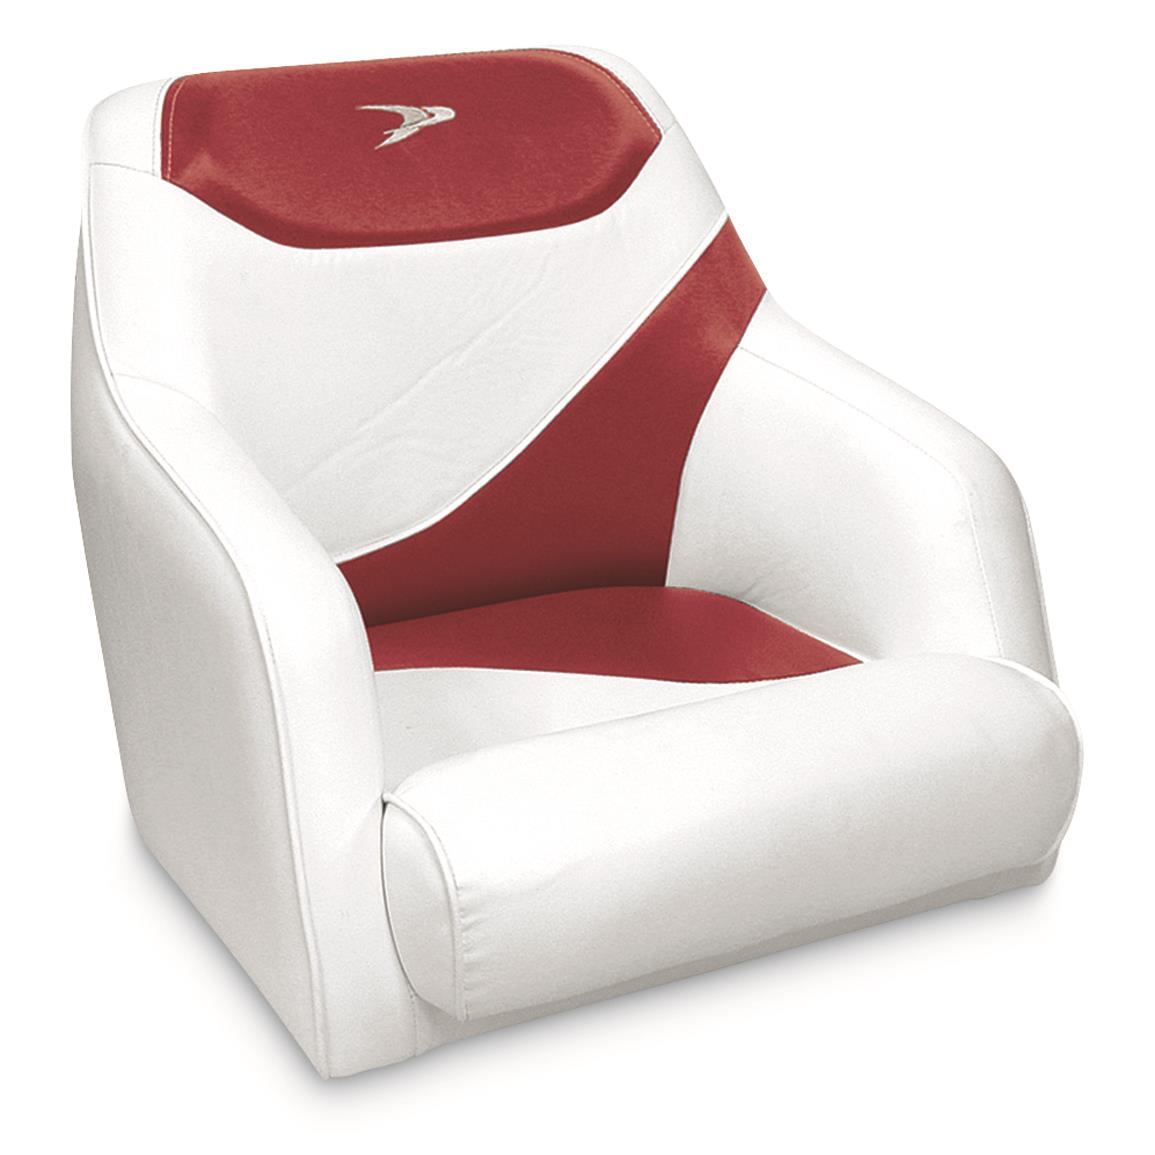 Wise Premium Deluxe Bucket Boat Seat, White/Red